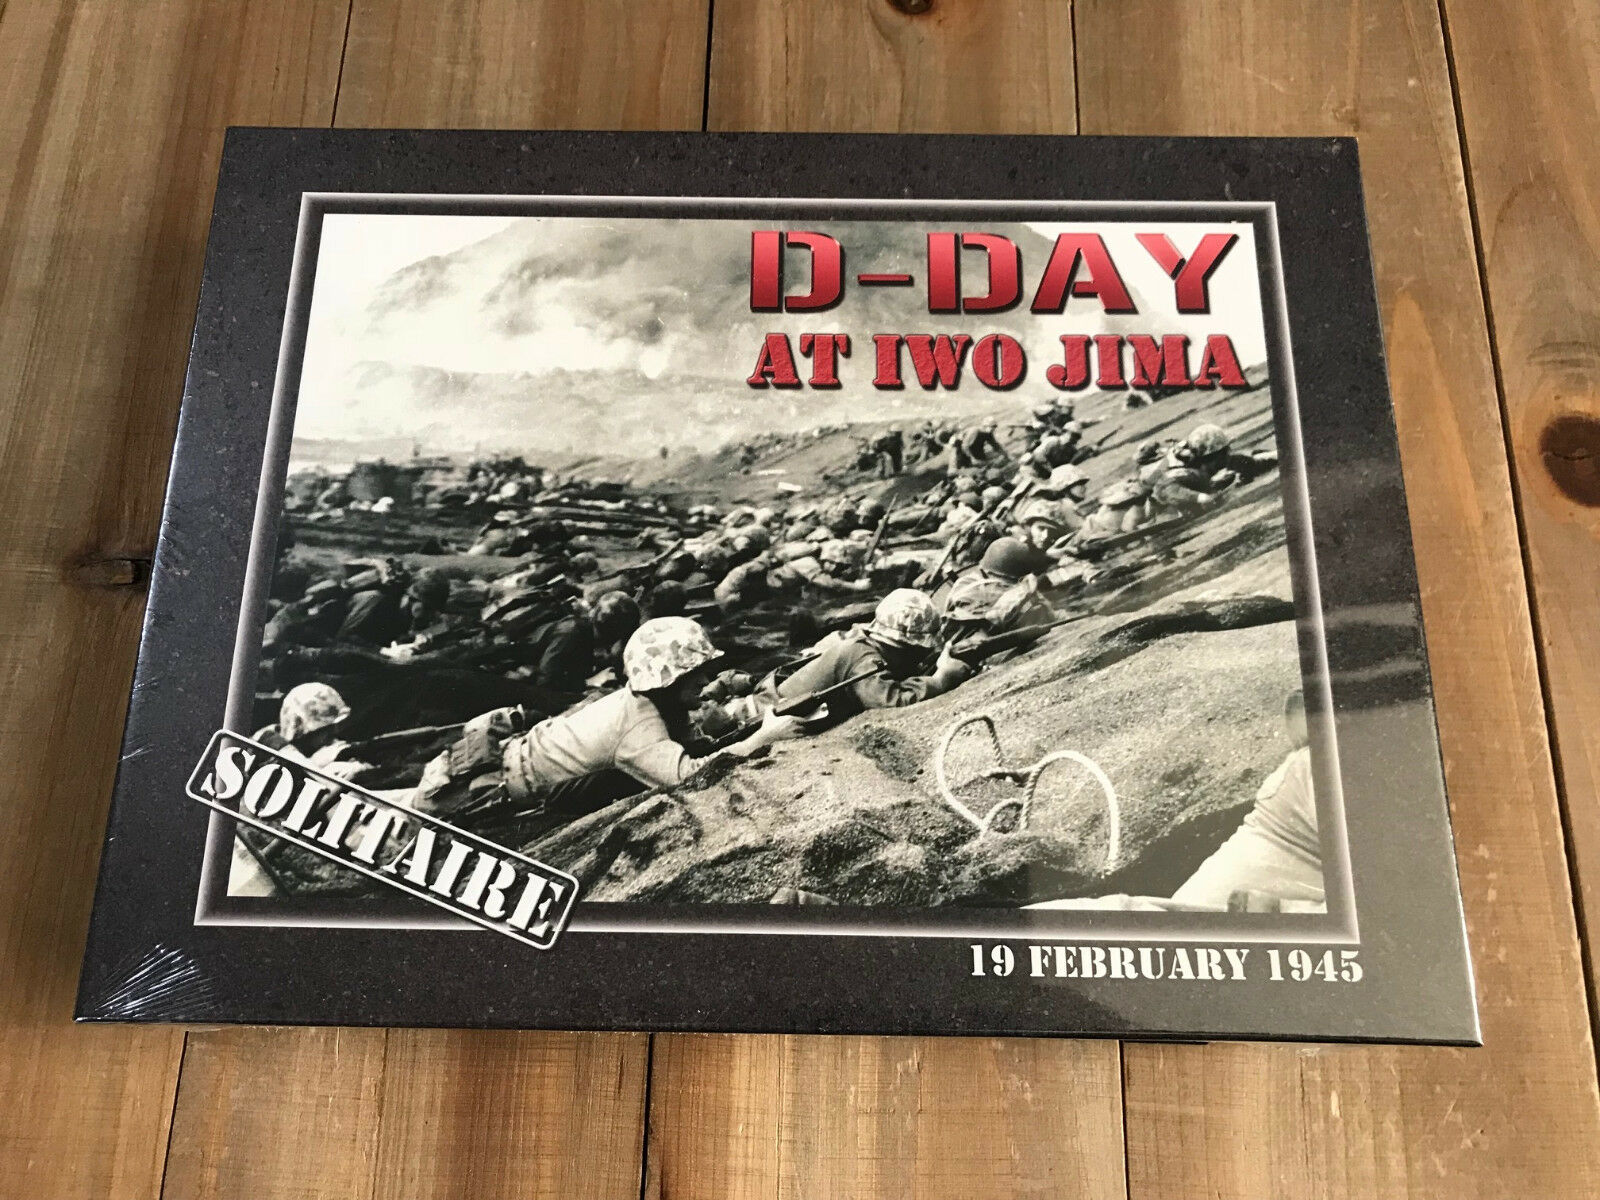 Wargame D-DAY AT IWO JIMA - Decision Games Edition with Board Mounted - WWII